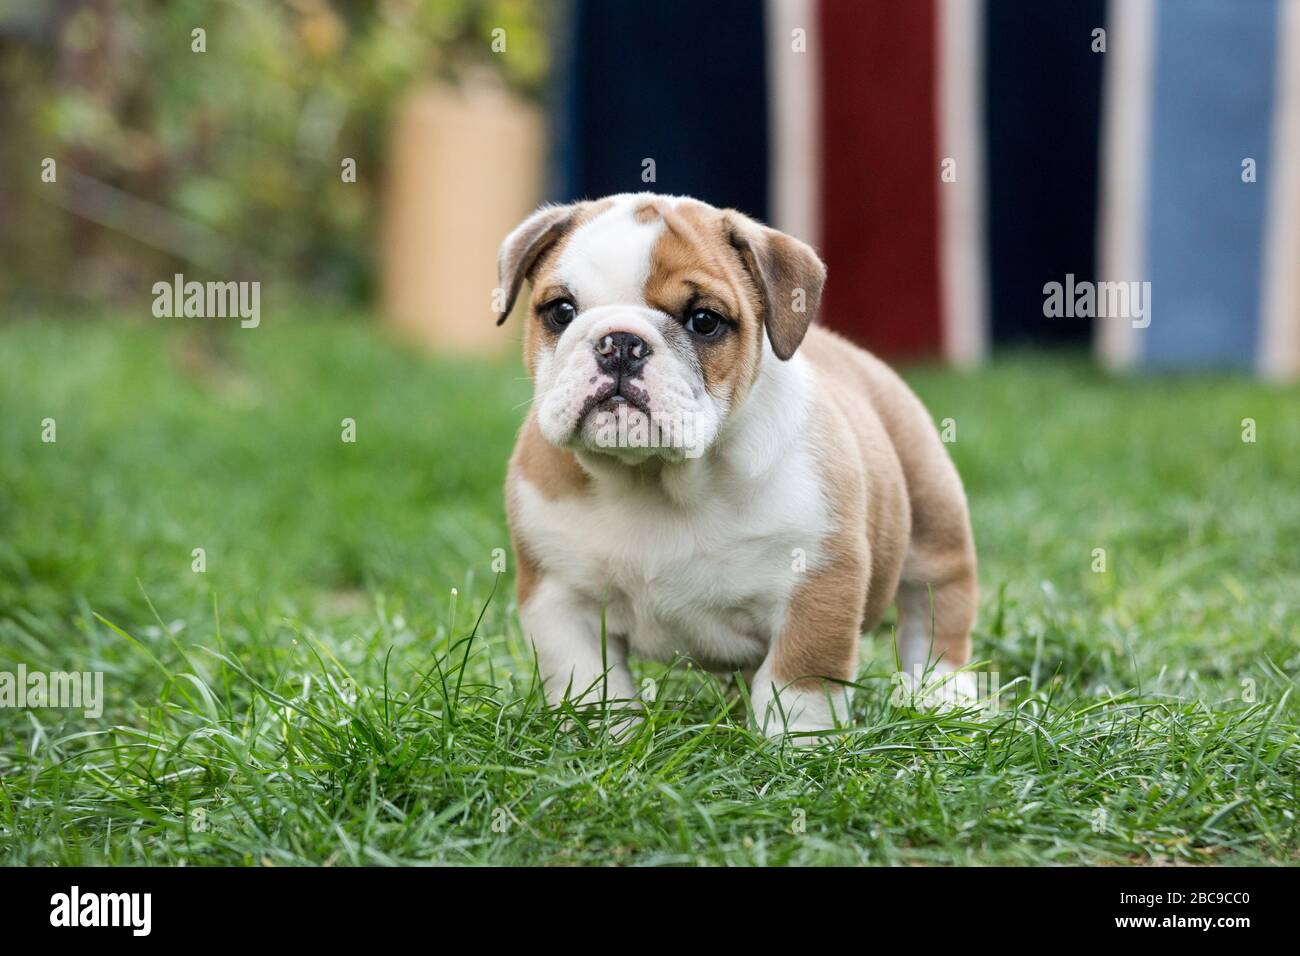 Cute English Bulldog Puppies Posing They Are Only Few Months Old Stock Photo Alamy